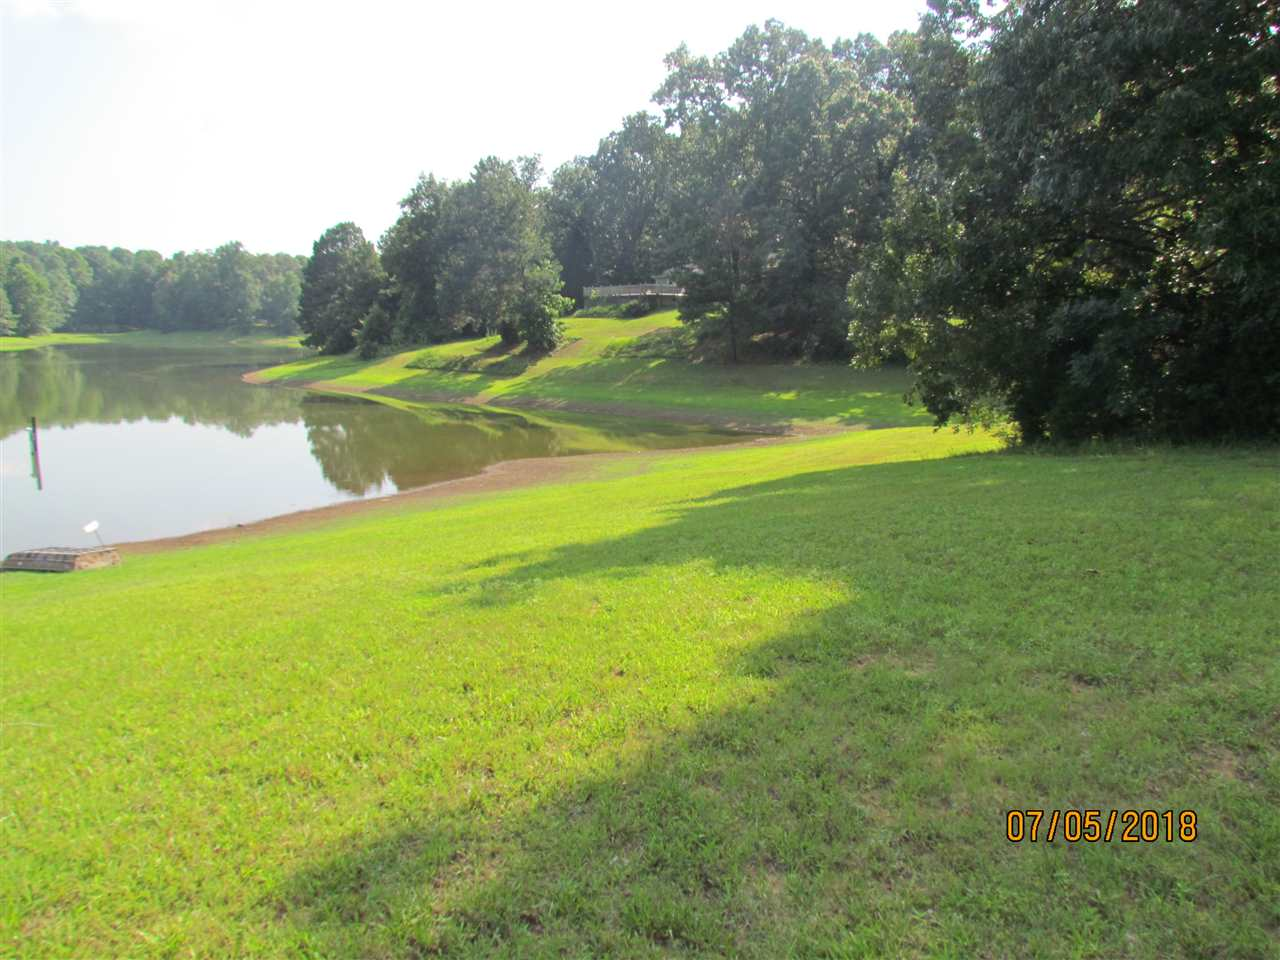 Lot 152 Northshore,Jackson,Tennessee 38305,Lots/land,Lot 152 Northshore,183785